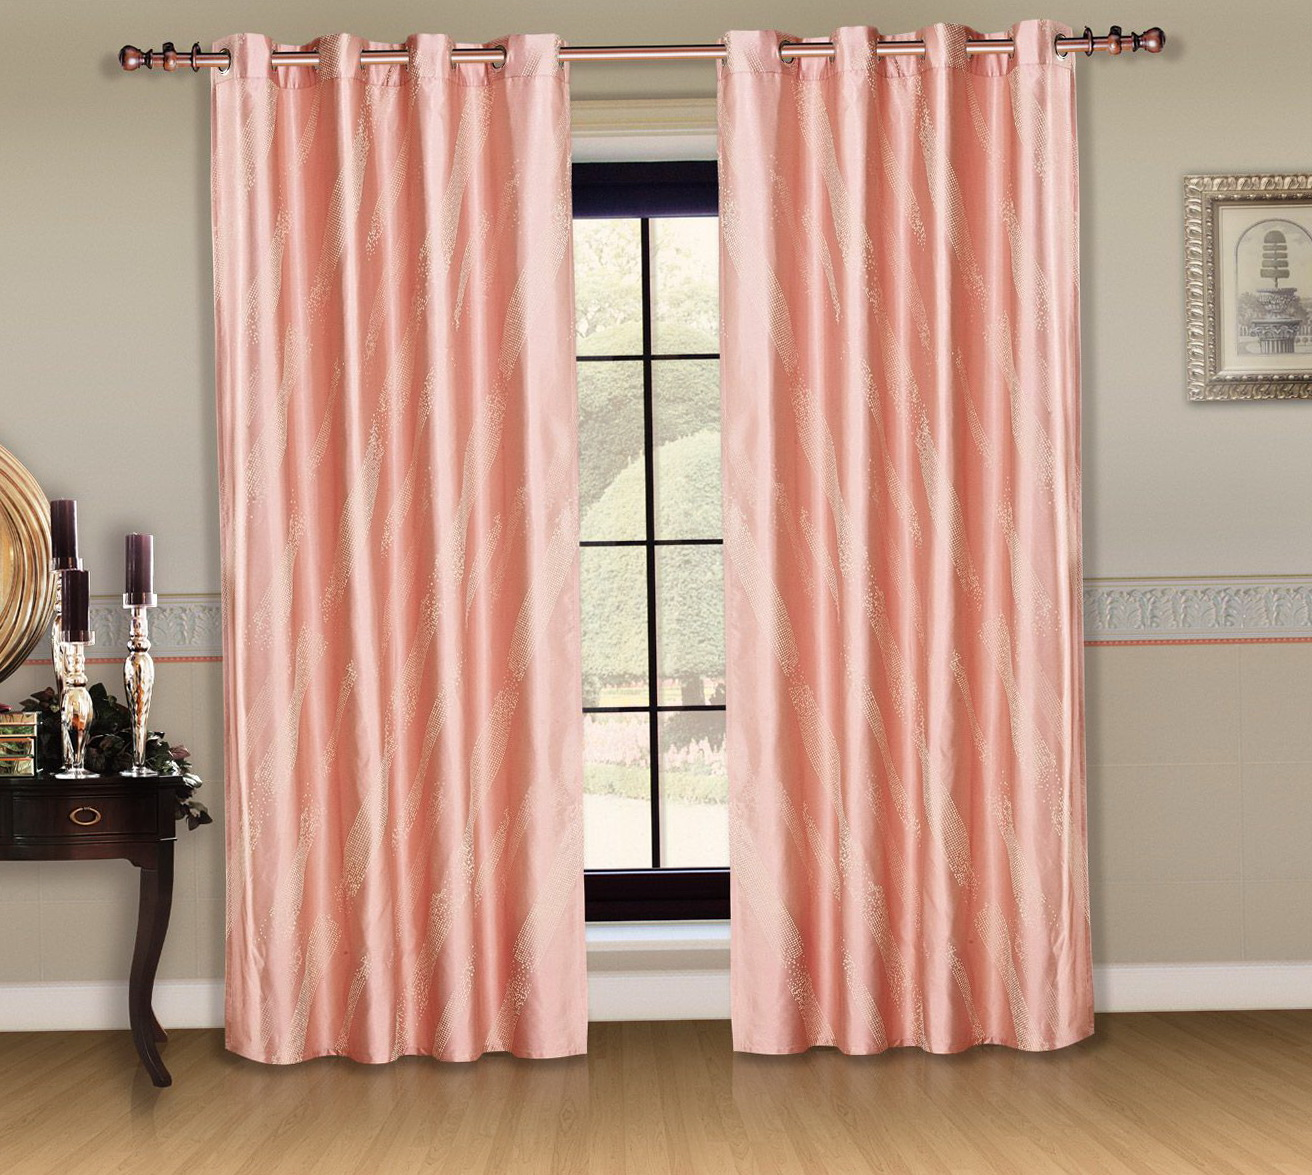 Buy Curtains Online Cheap Home Design Ideas